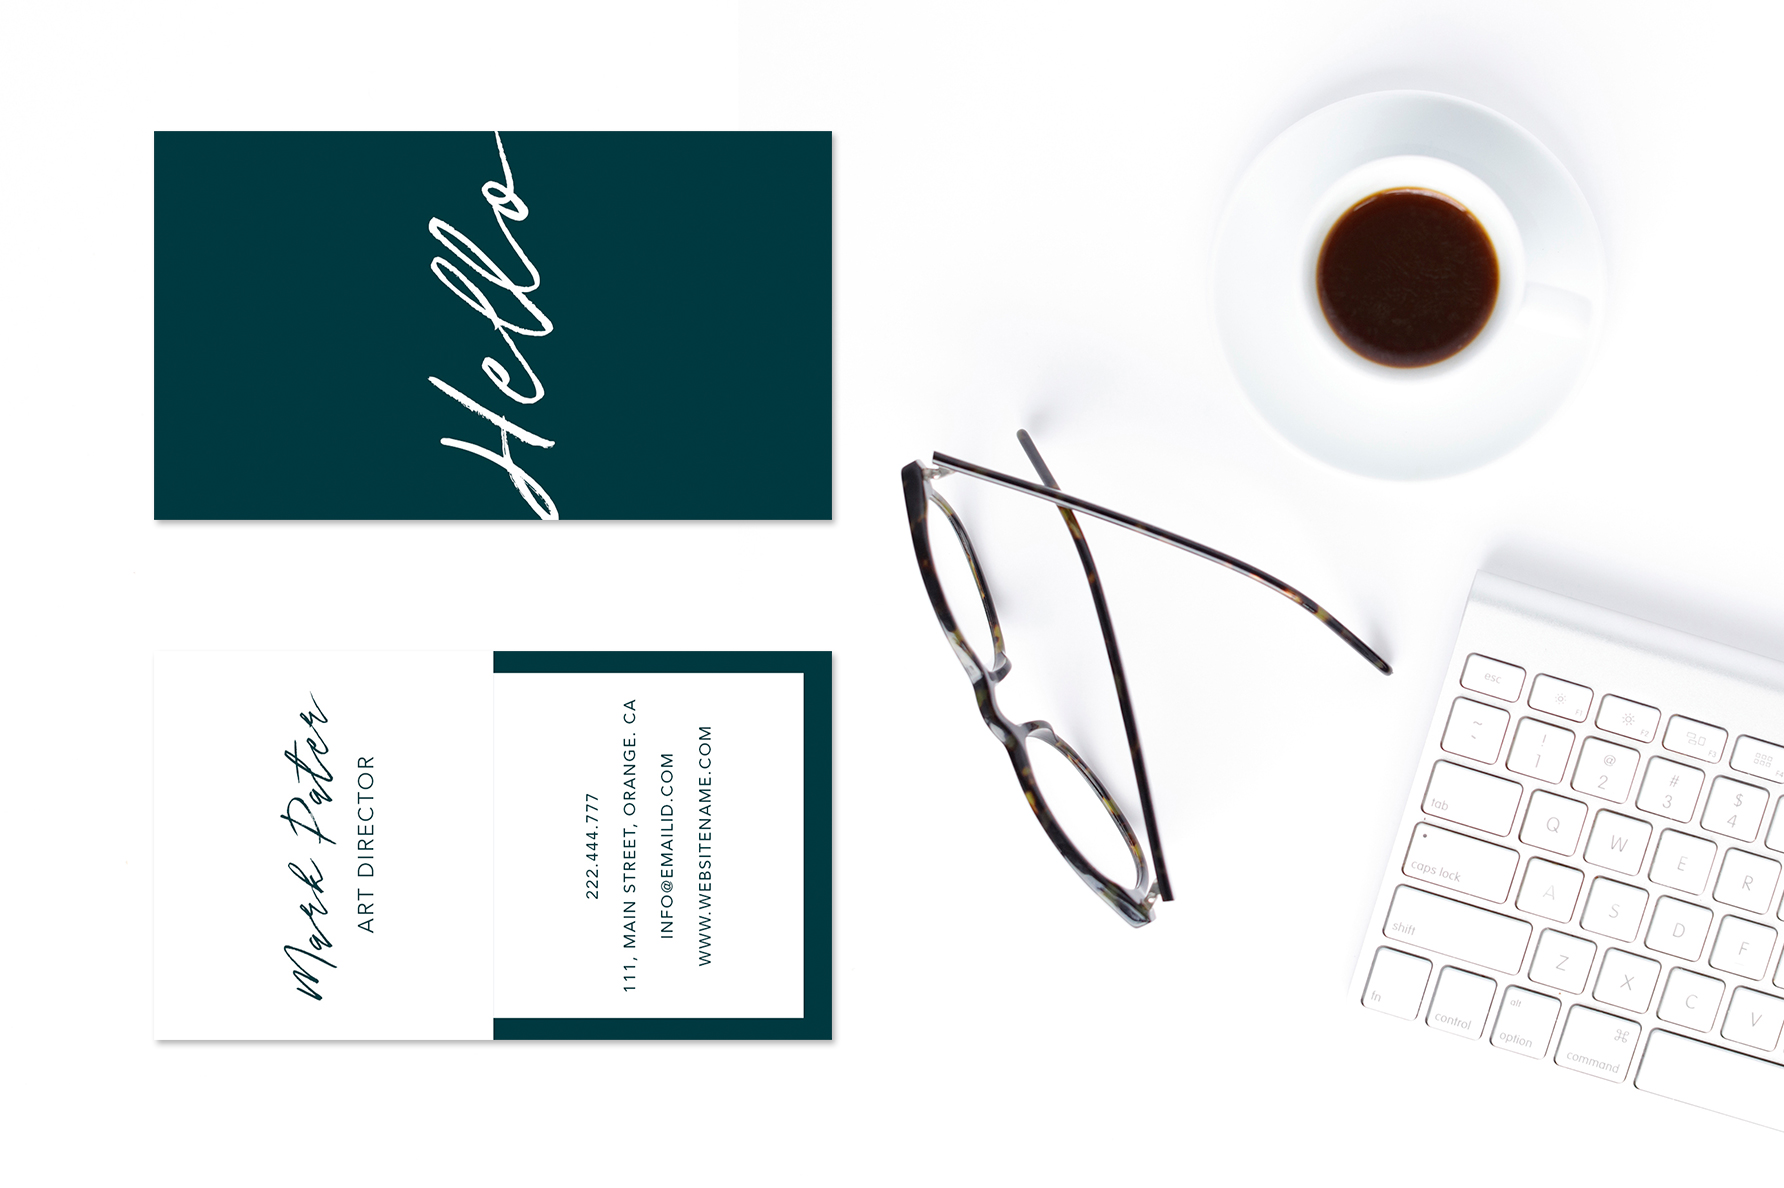 Professional hello script business card example image 3